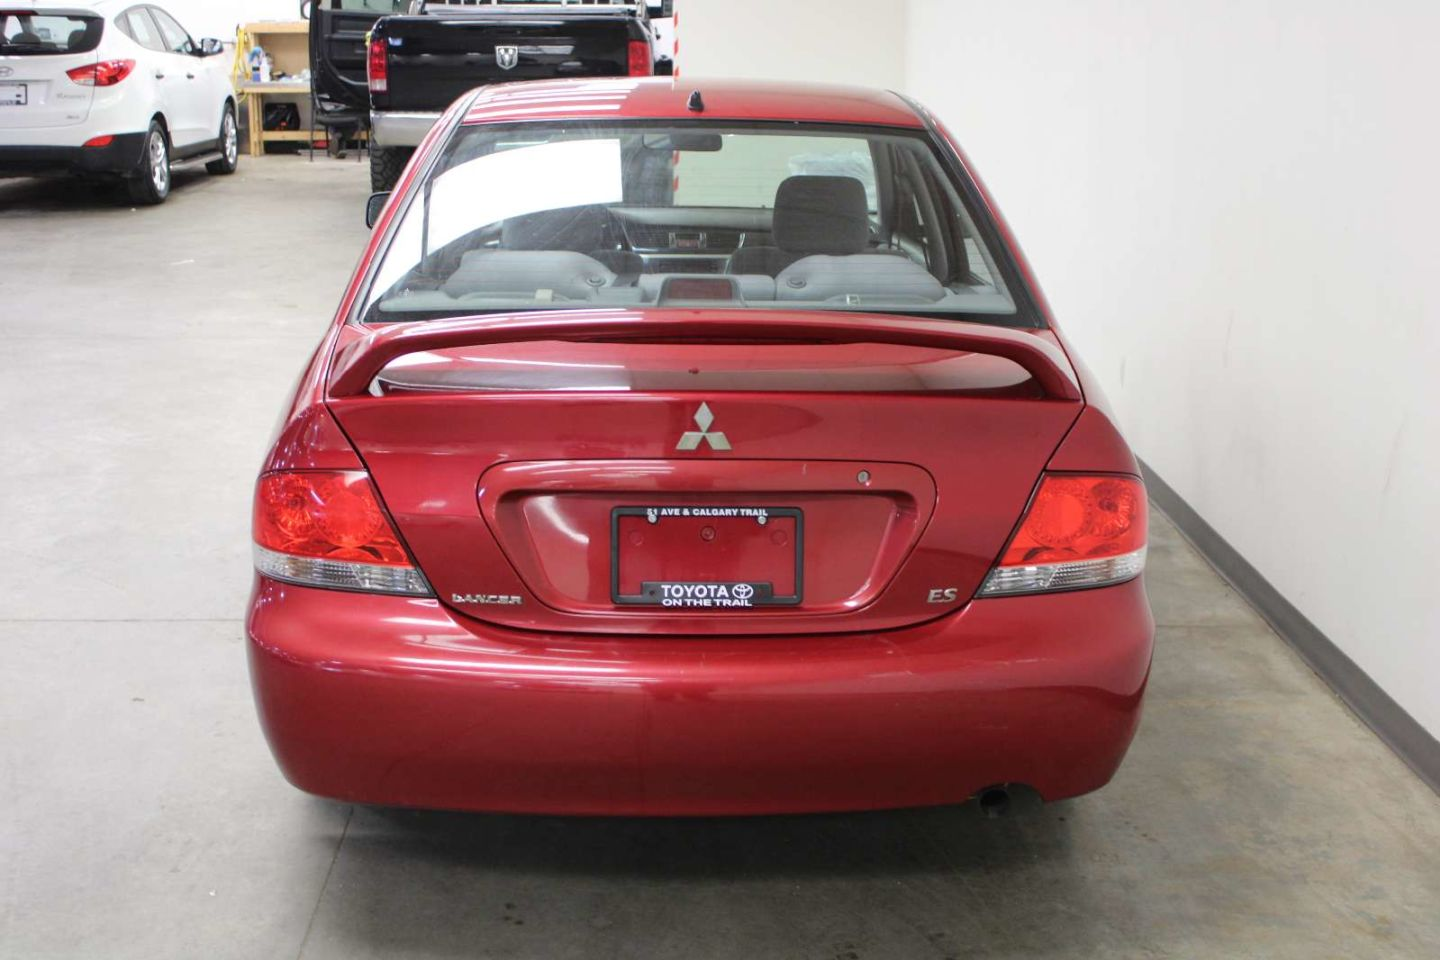 2004 Mitsubishi Lancer ES for sale in Edmonton, Alberta